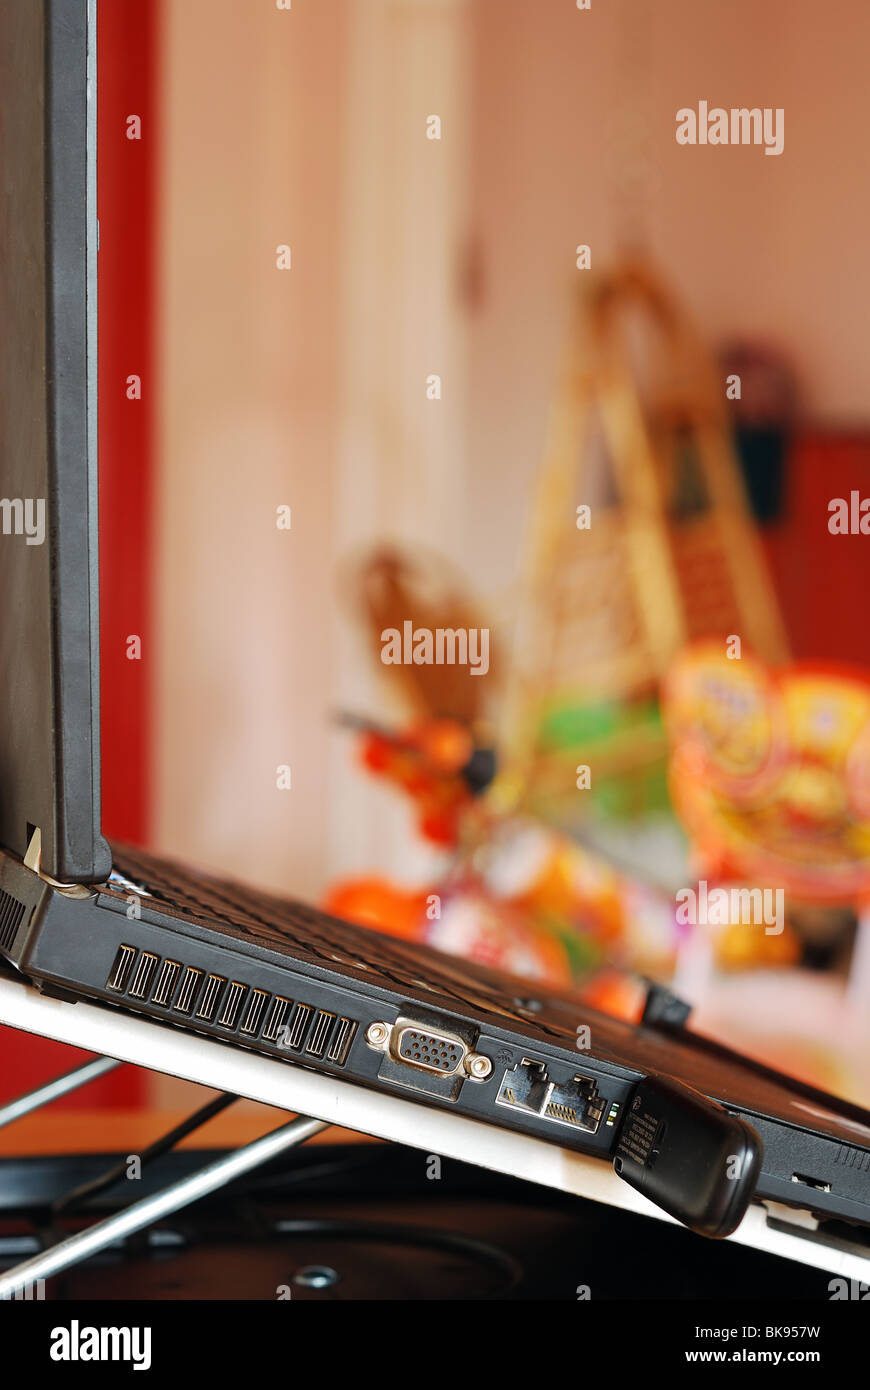 Laptop with Blurred background Stock Photo